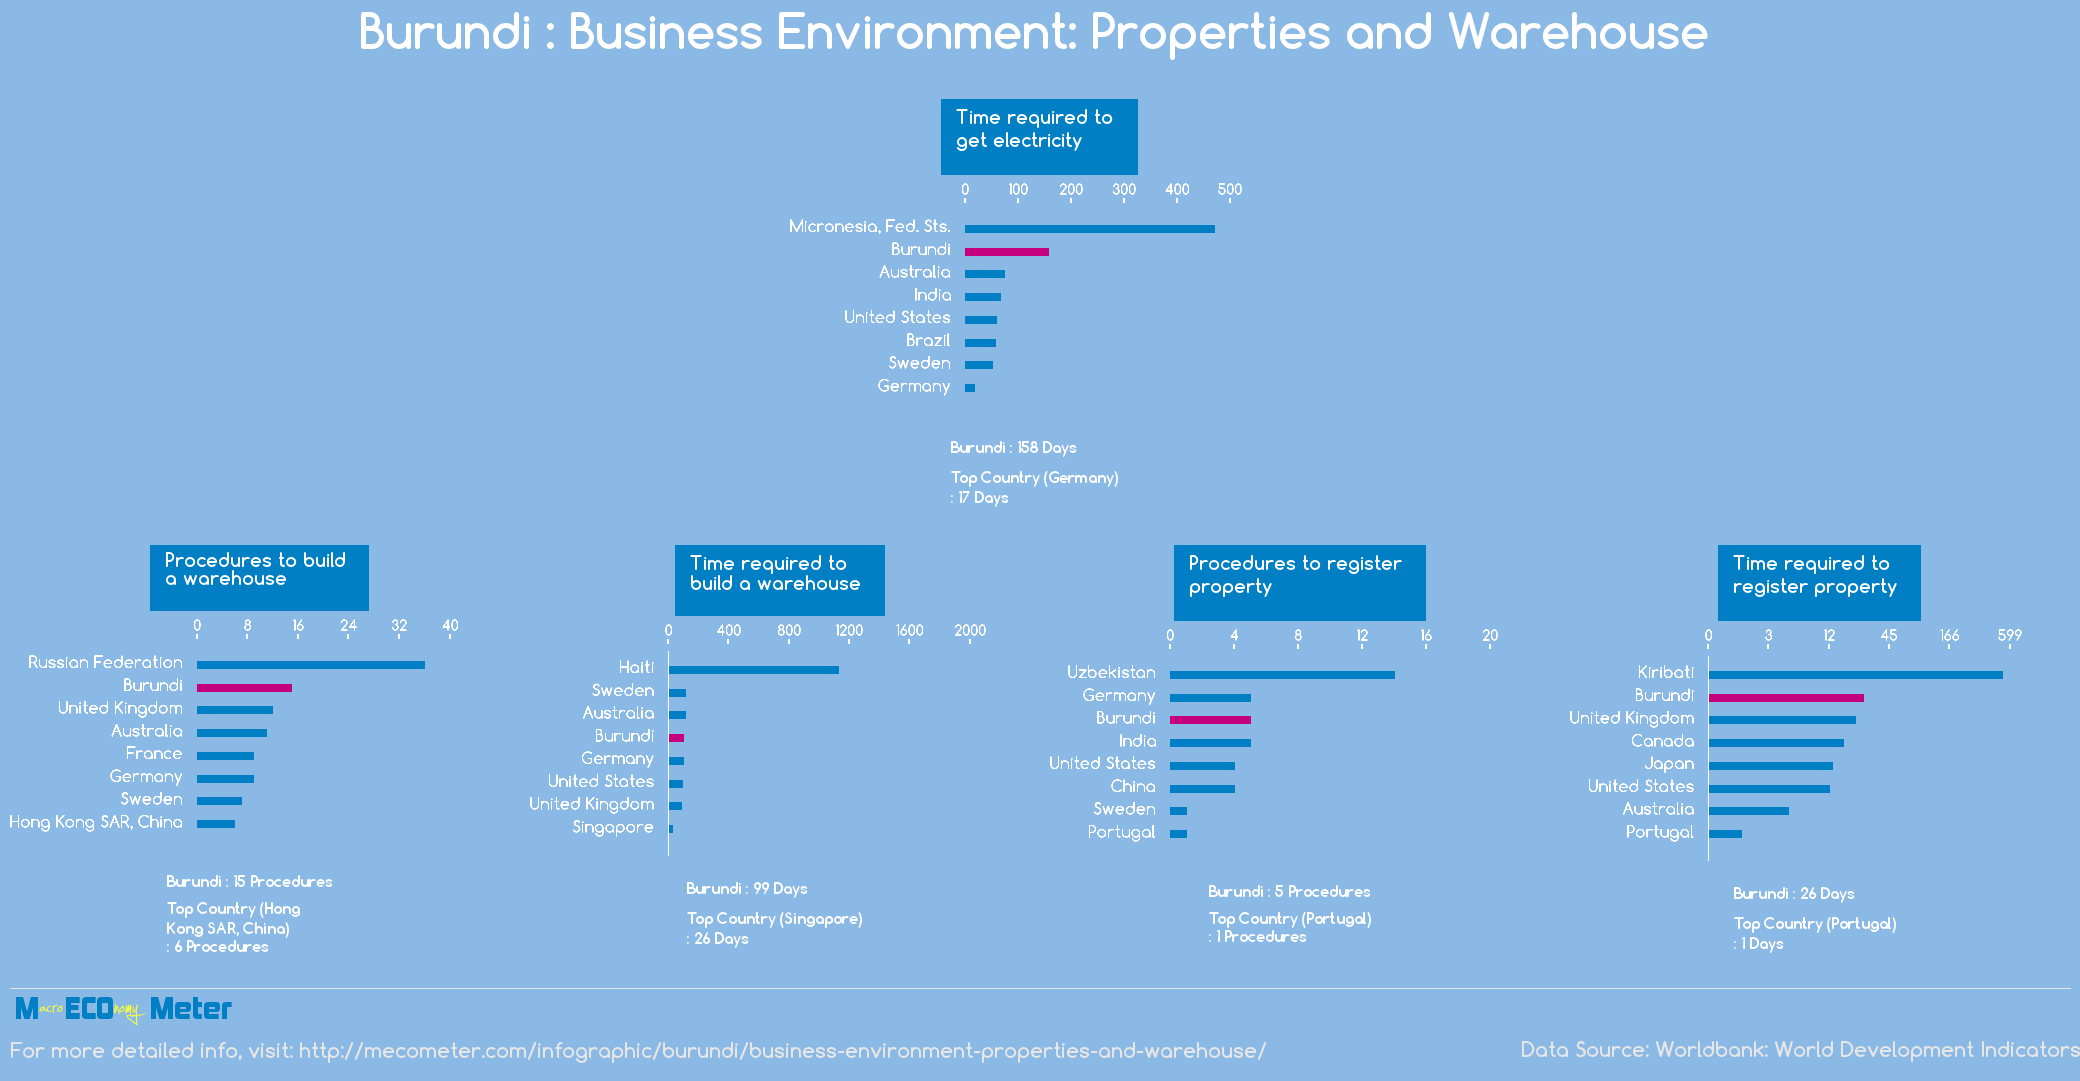 Burundi : Business Environment: Properties and Warehouse